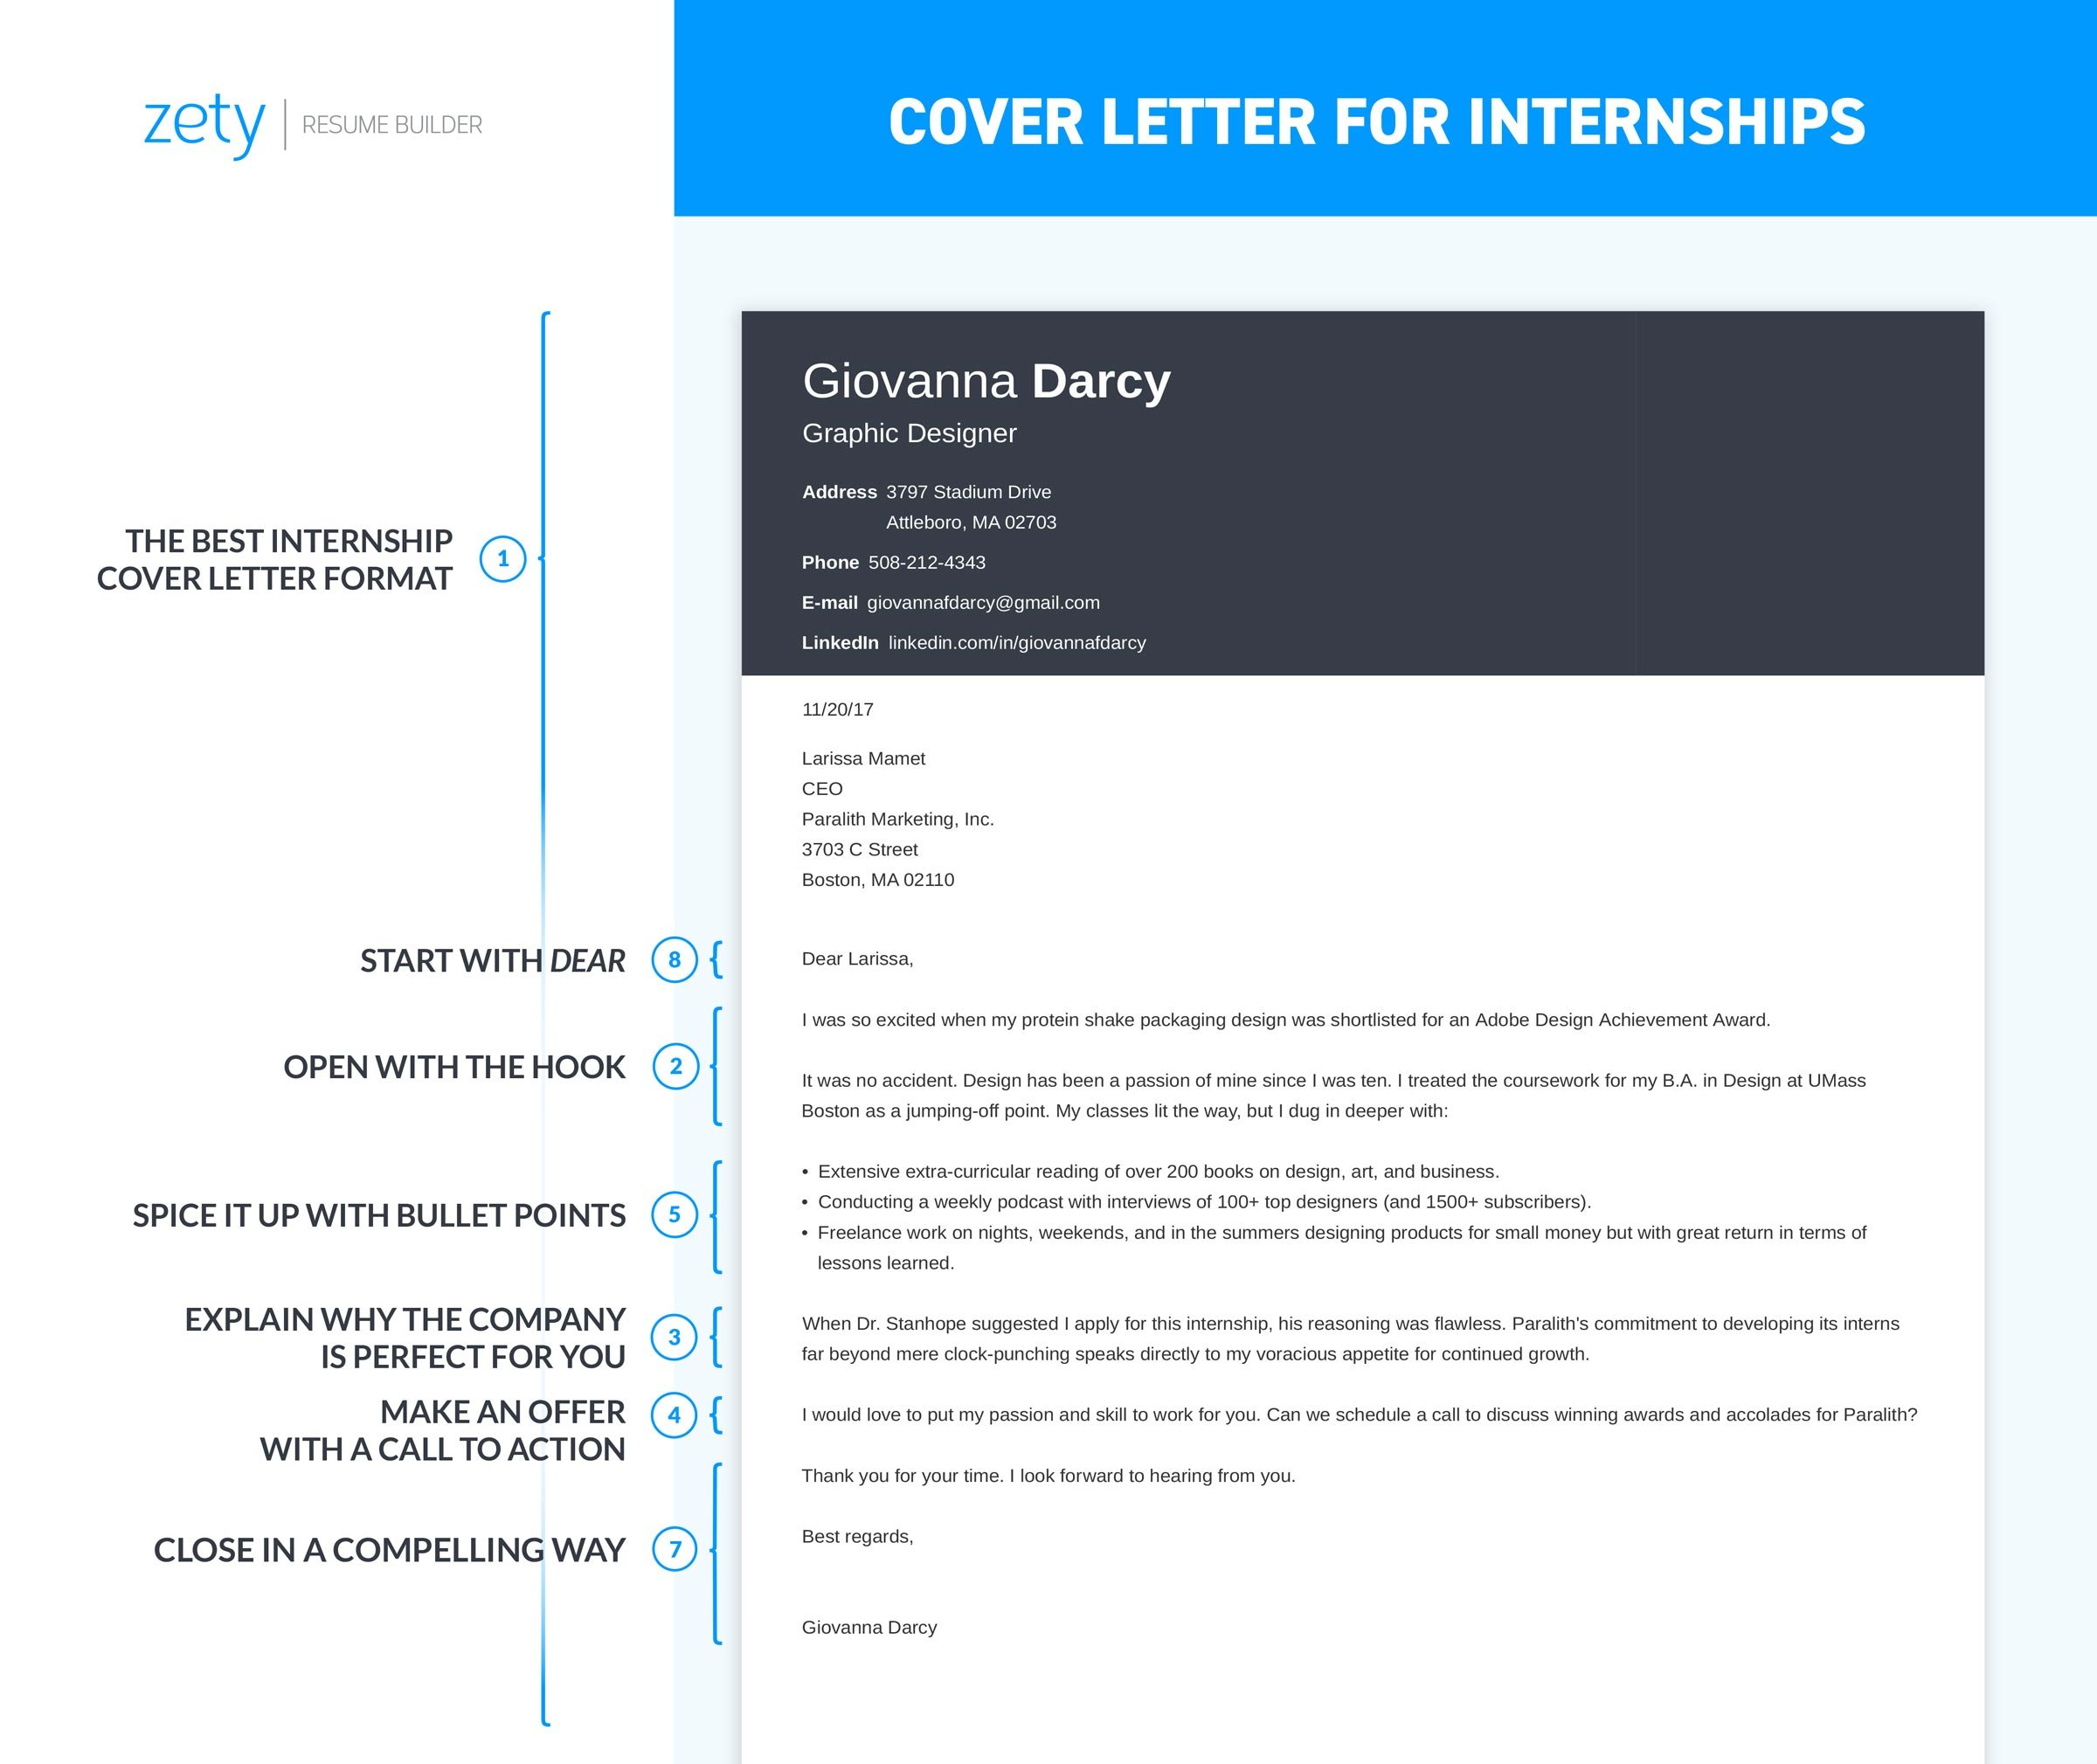 How To Write A Cover Letter For An Internship Position 20